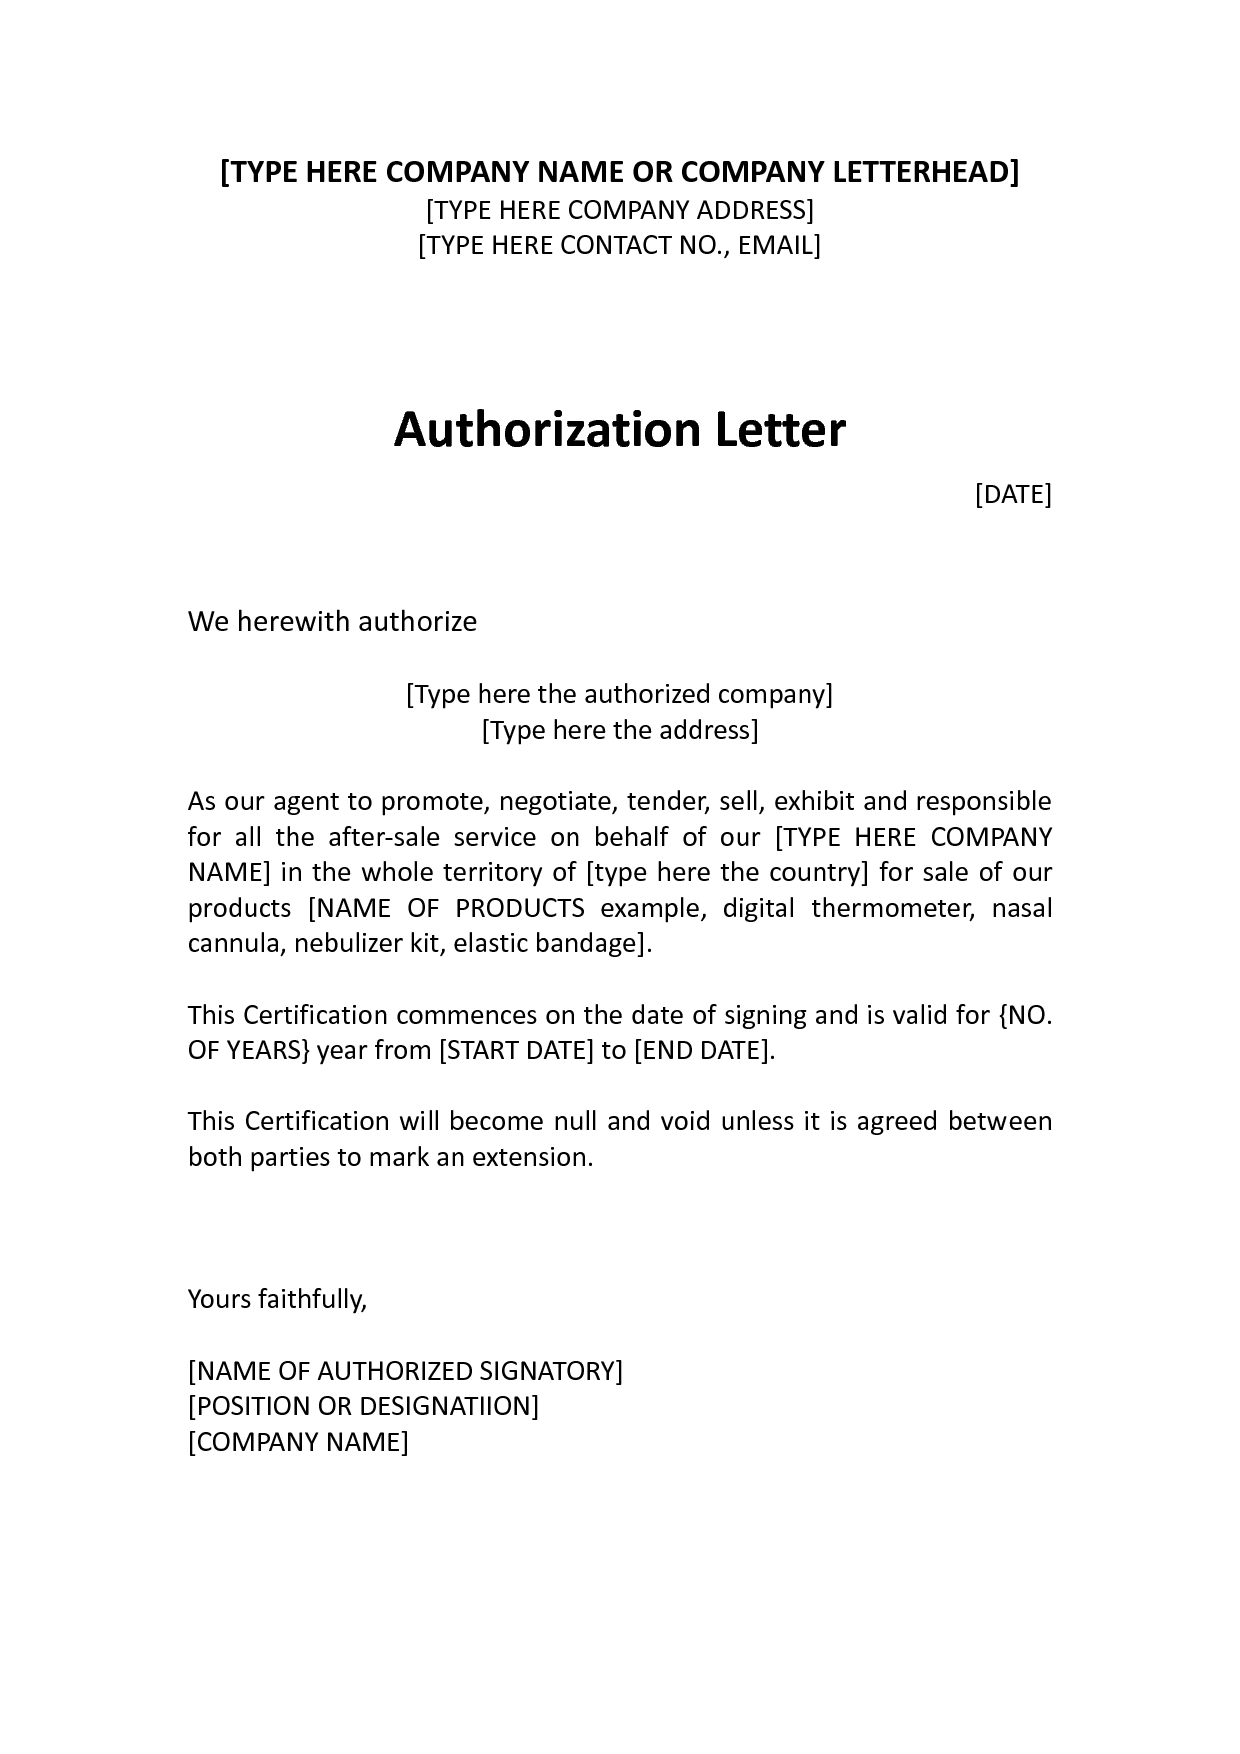 Dentist Appointment Letter Template - Authorization Distributor Letter Sample Distributor Dealer